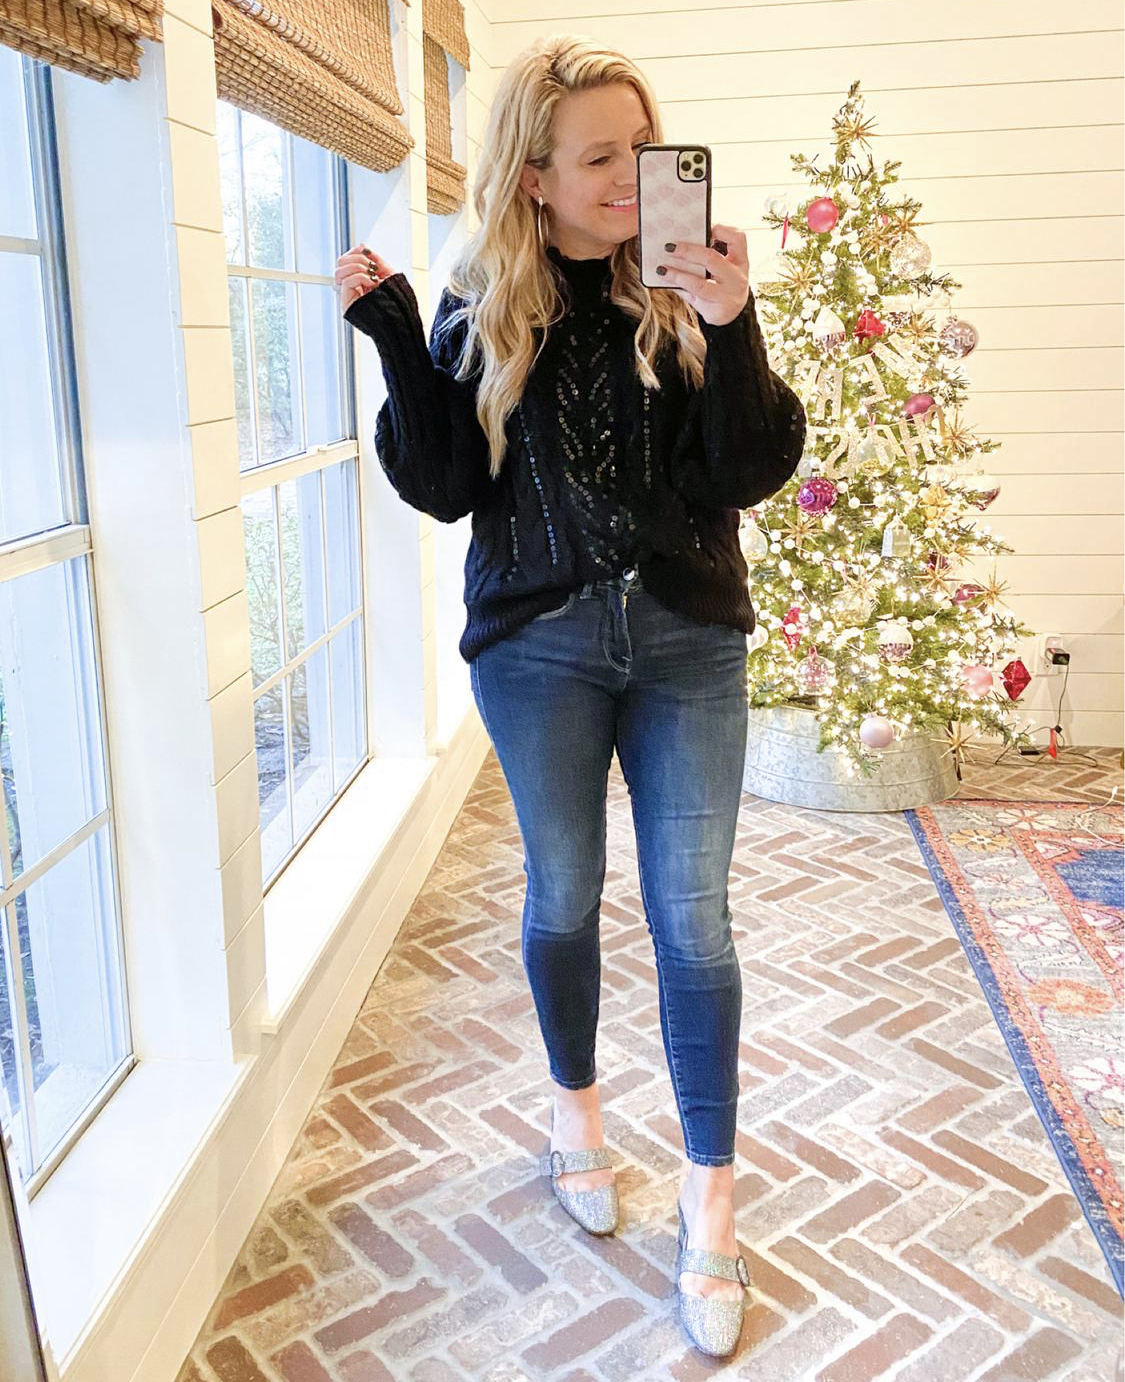 December Outfits by popular Houston fashion blog, Fancy Ashley: image of a woman standing in front of a Christmas tree decorated with pink, white and silver ornaments and wearing a black sequin sweater, jeans, and Sarah Jessica Parker sliver slide heel shoes.